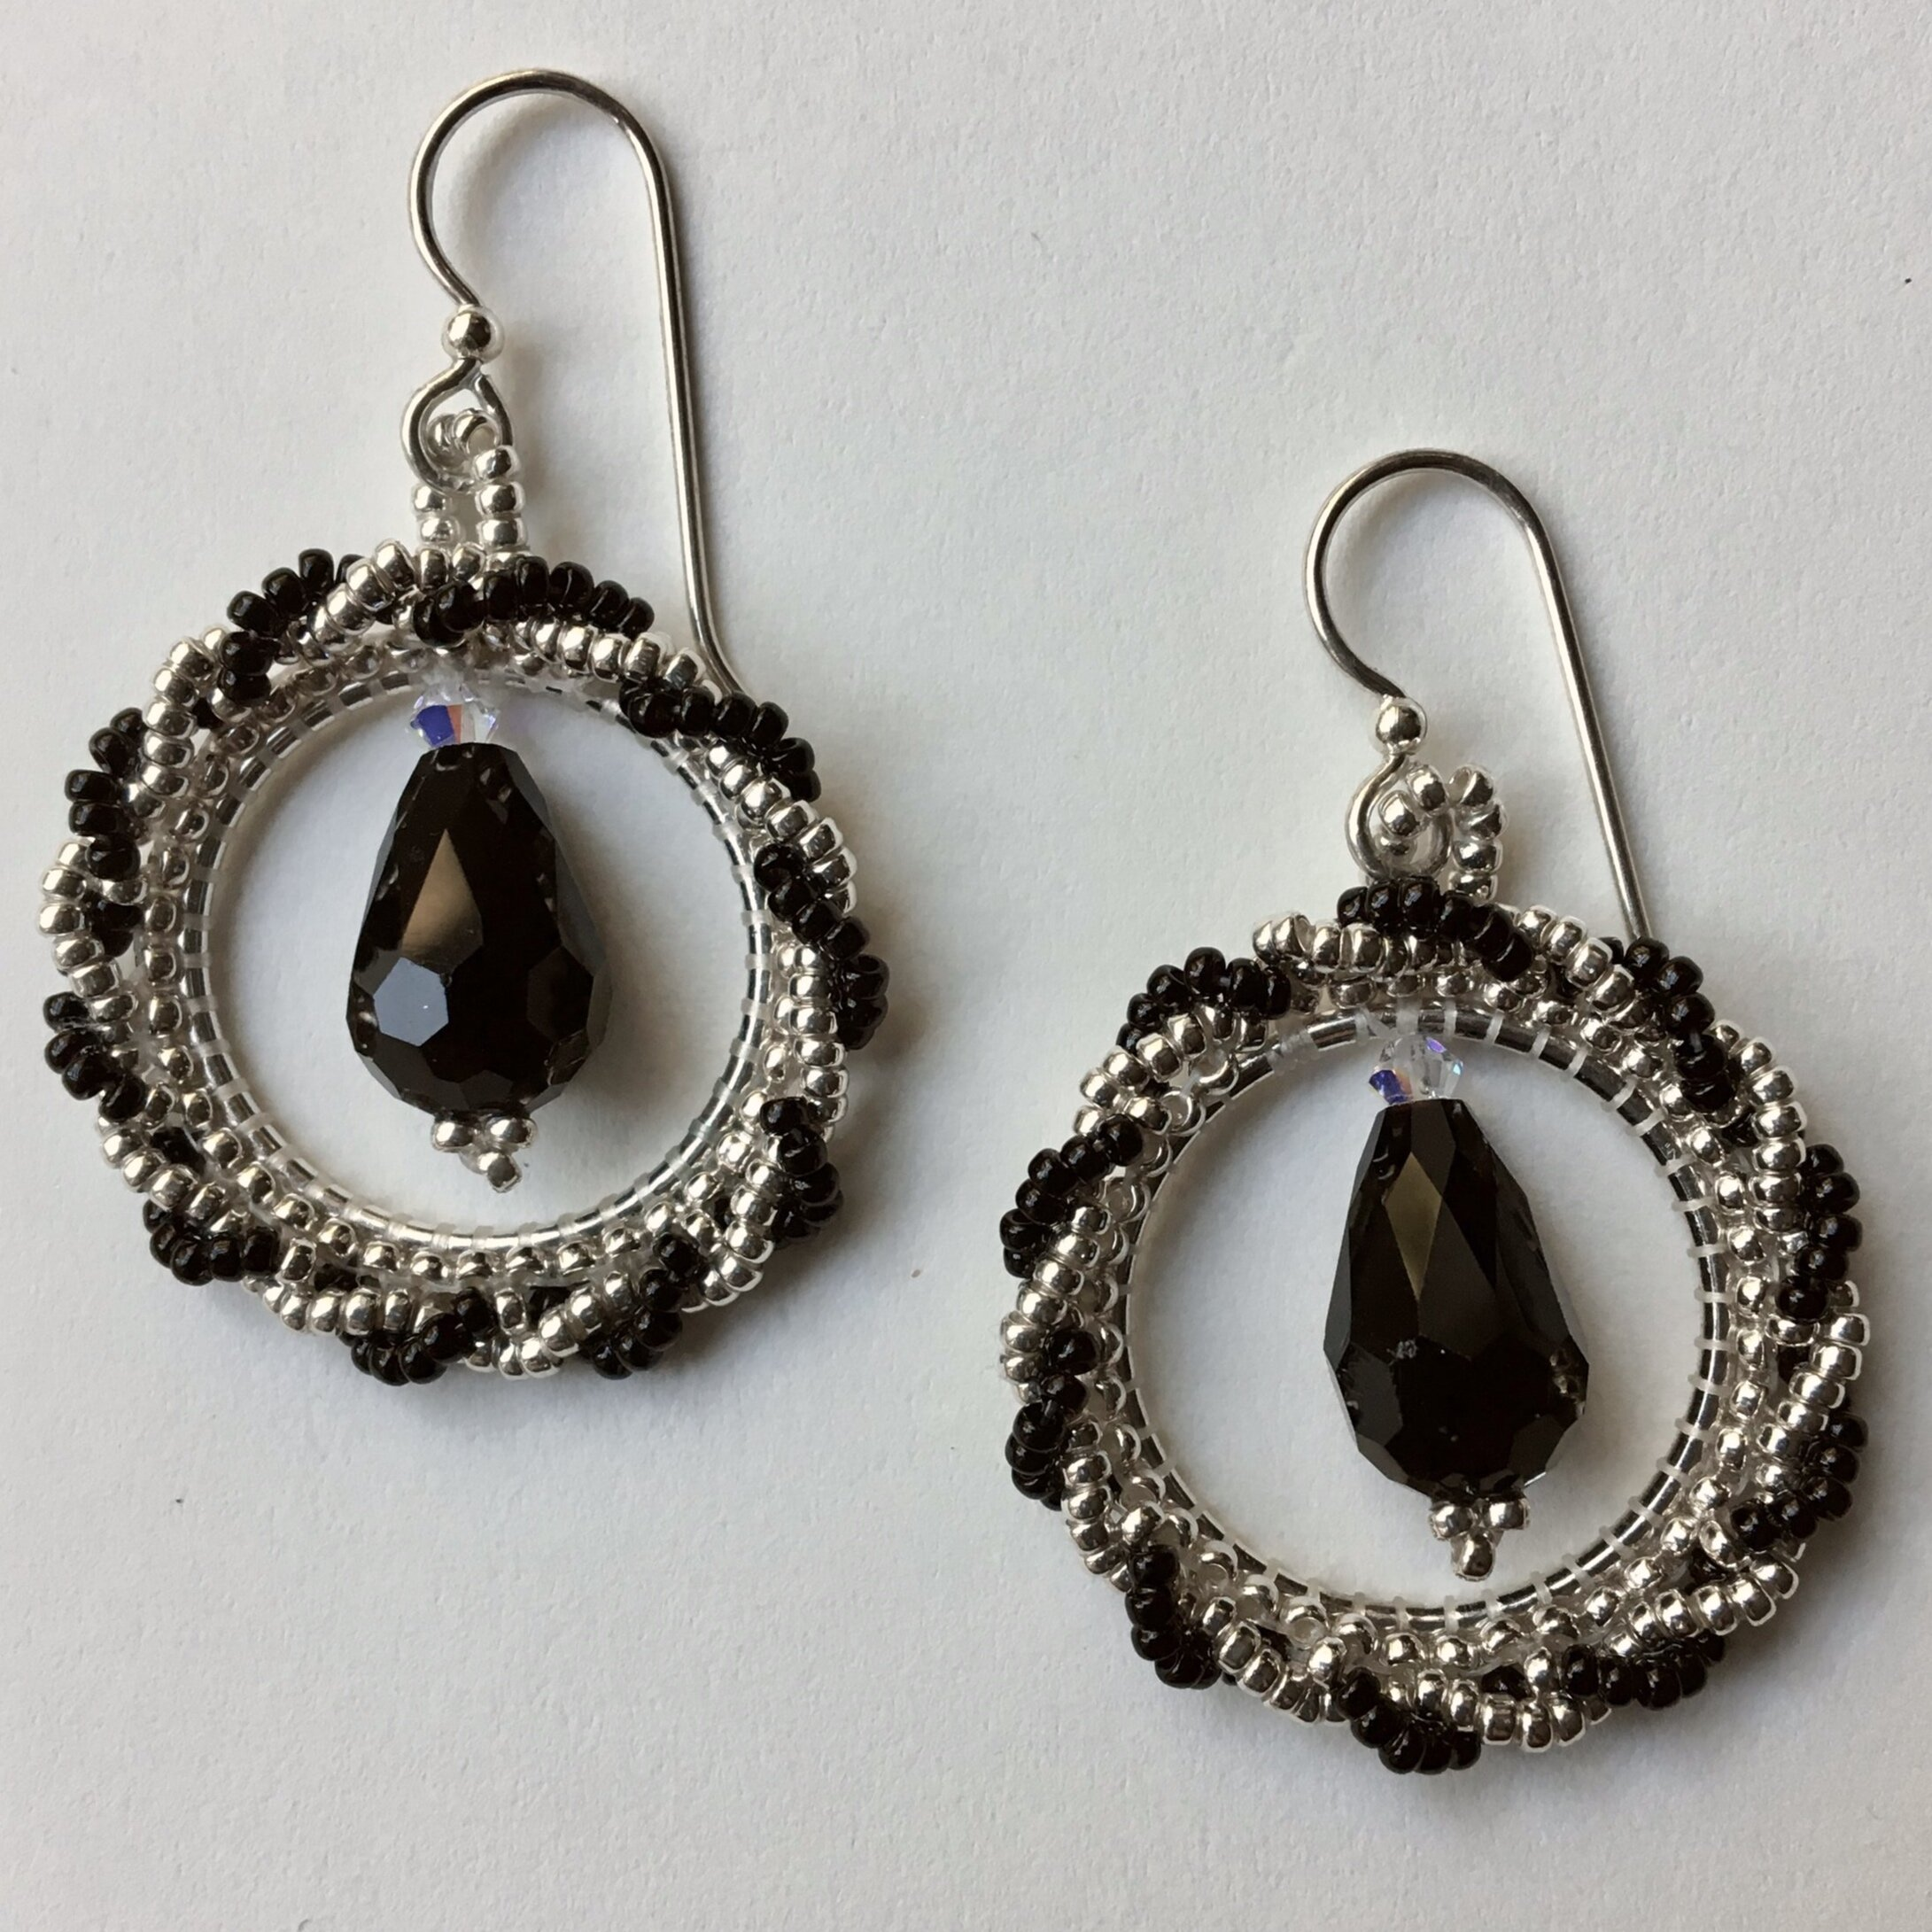 NEW! Twisted Silver and Black Hoops with Jet Crystal Drop Earrings